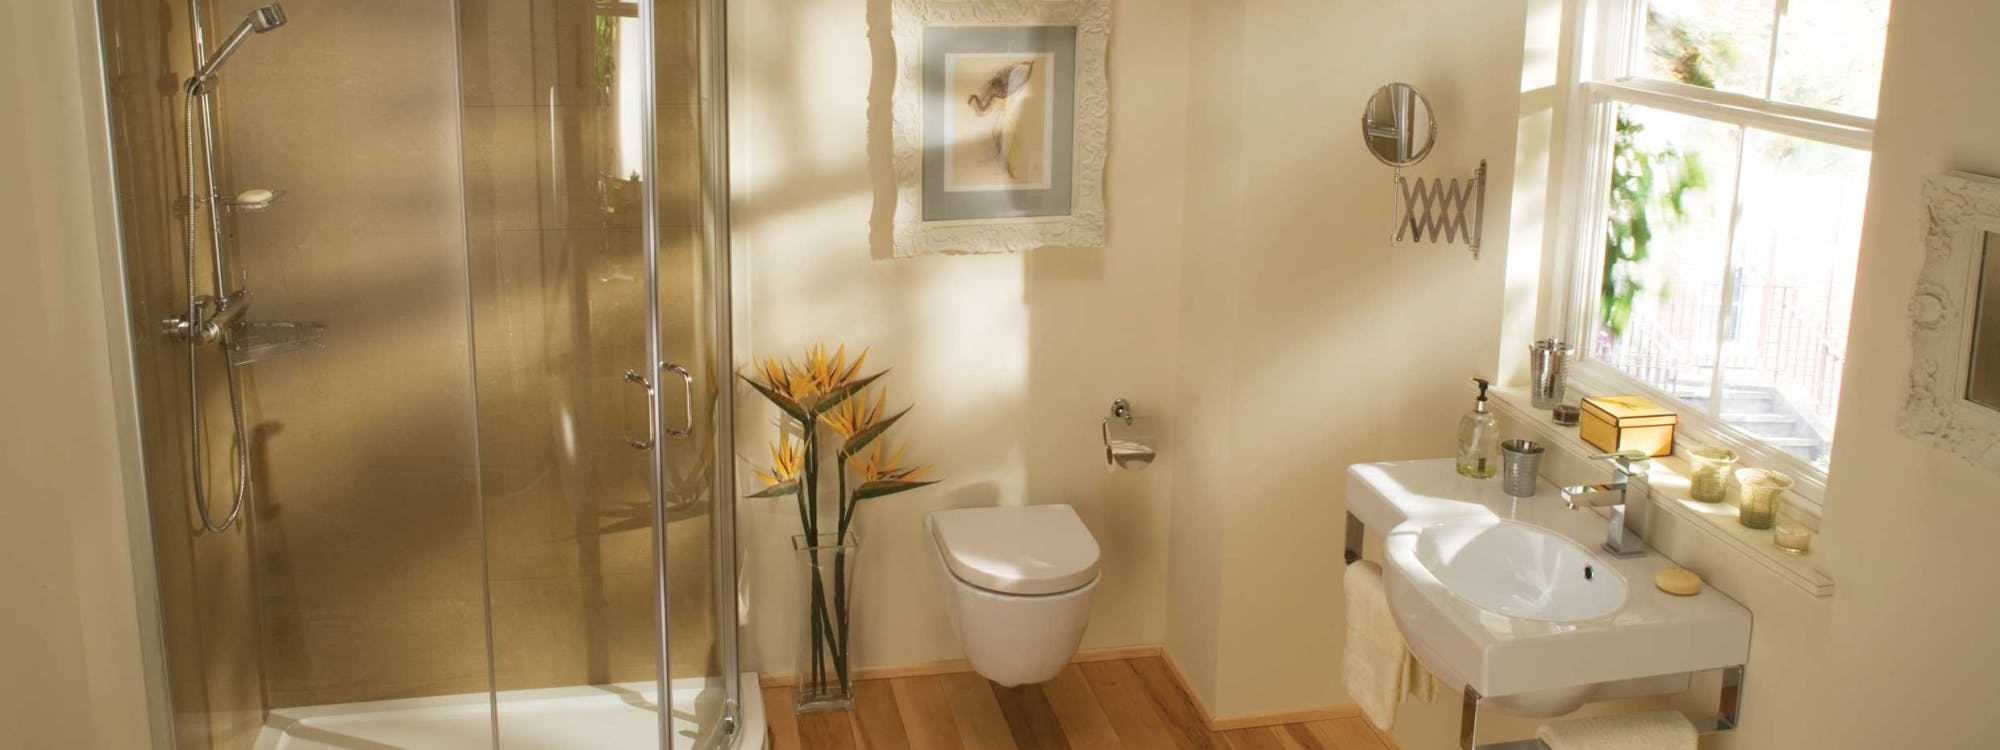 internal improvements - bespoke bathrooms  designed, supplied, project managed & installed